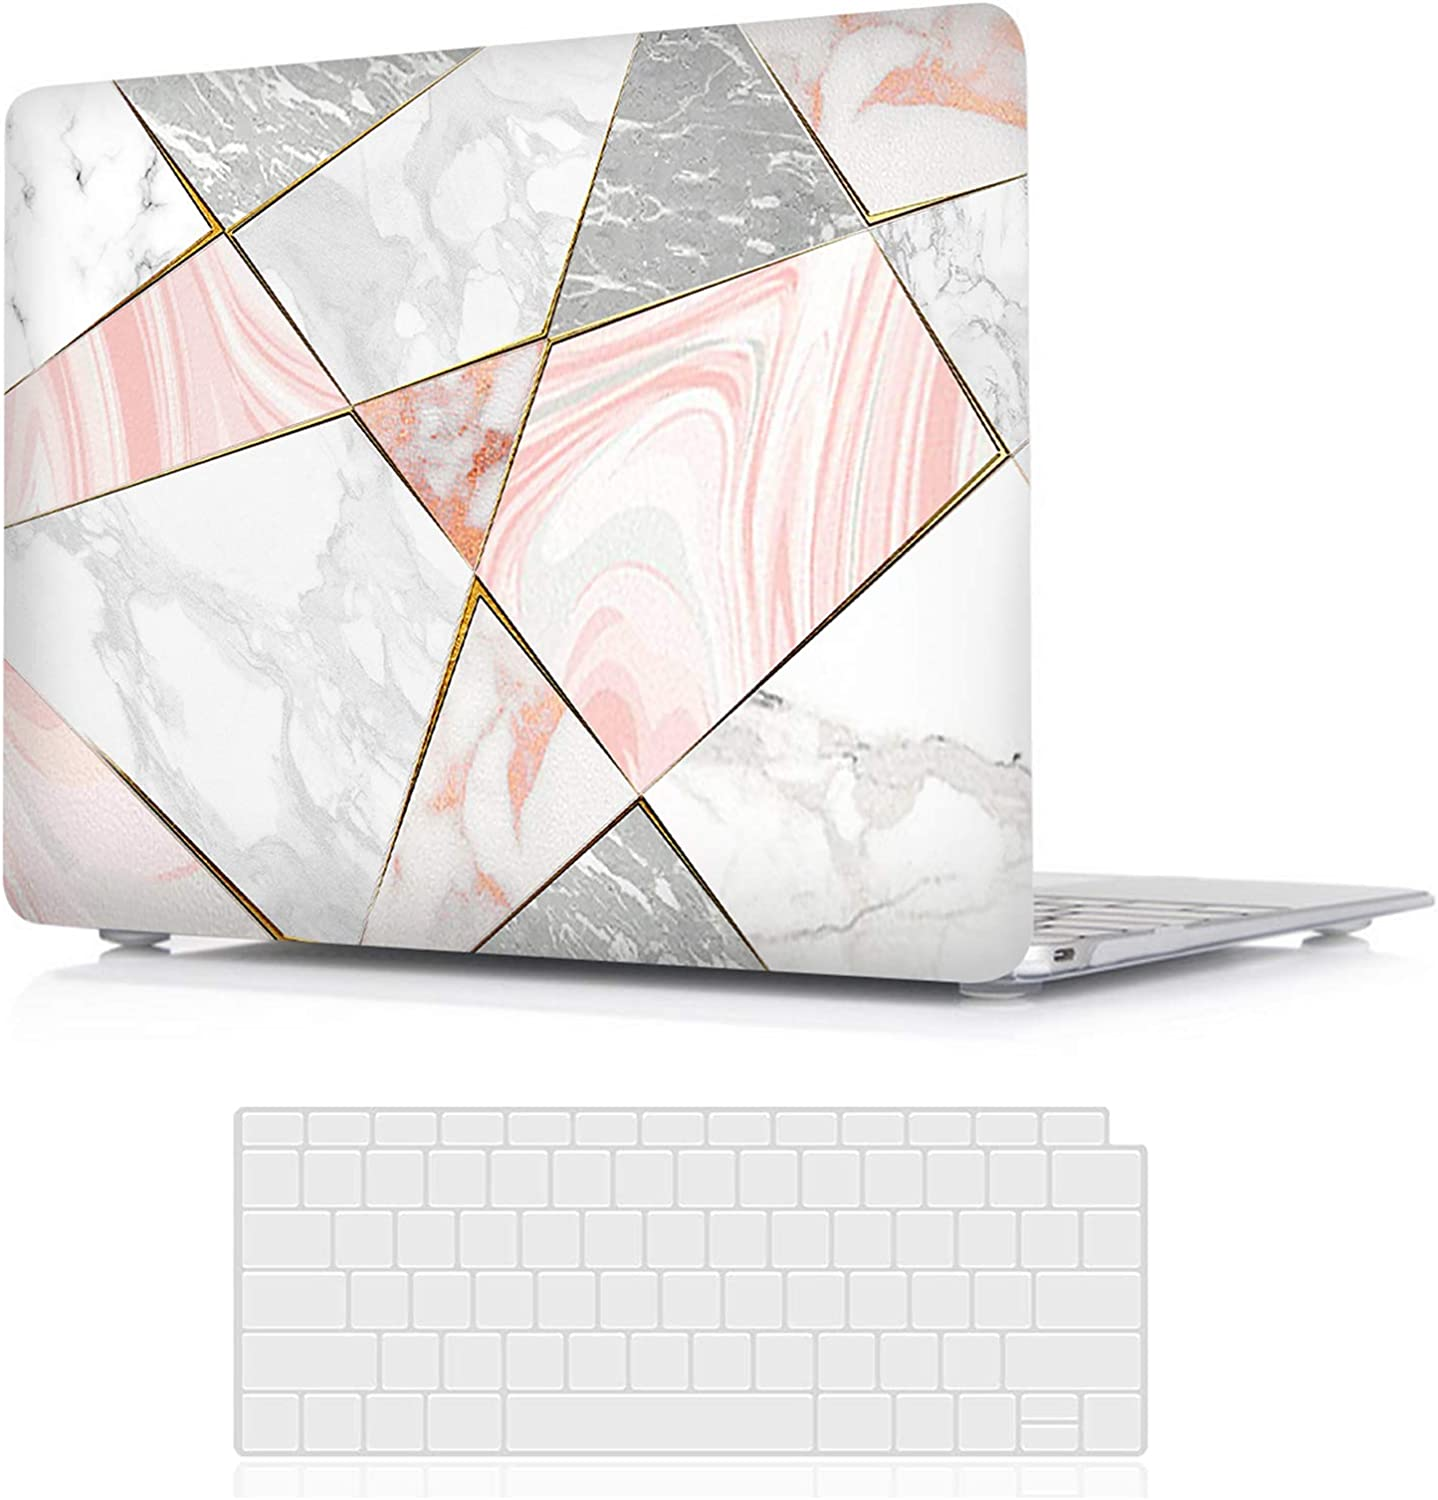 Valkit MacBook Pro 15 inch Case 2019 2018 2017 2016 Release A1990 A1707, Plastic Hard Shell Case Only Compatible with Apple Mac Pro 15 Touch Bar, Rose Gold Marble